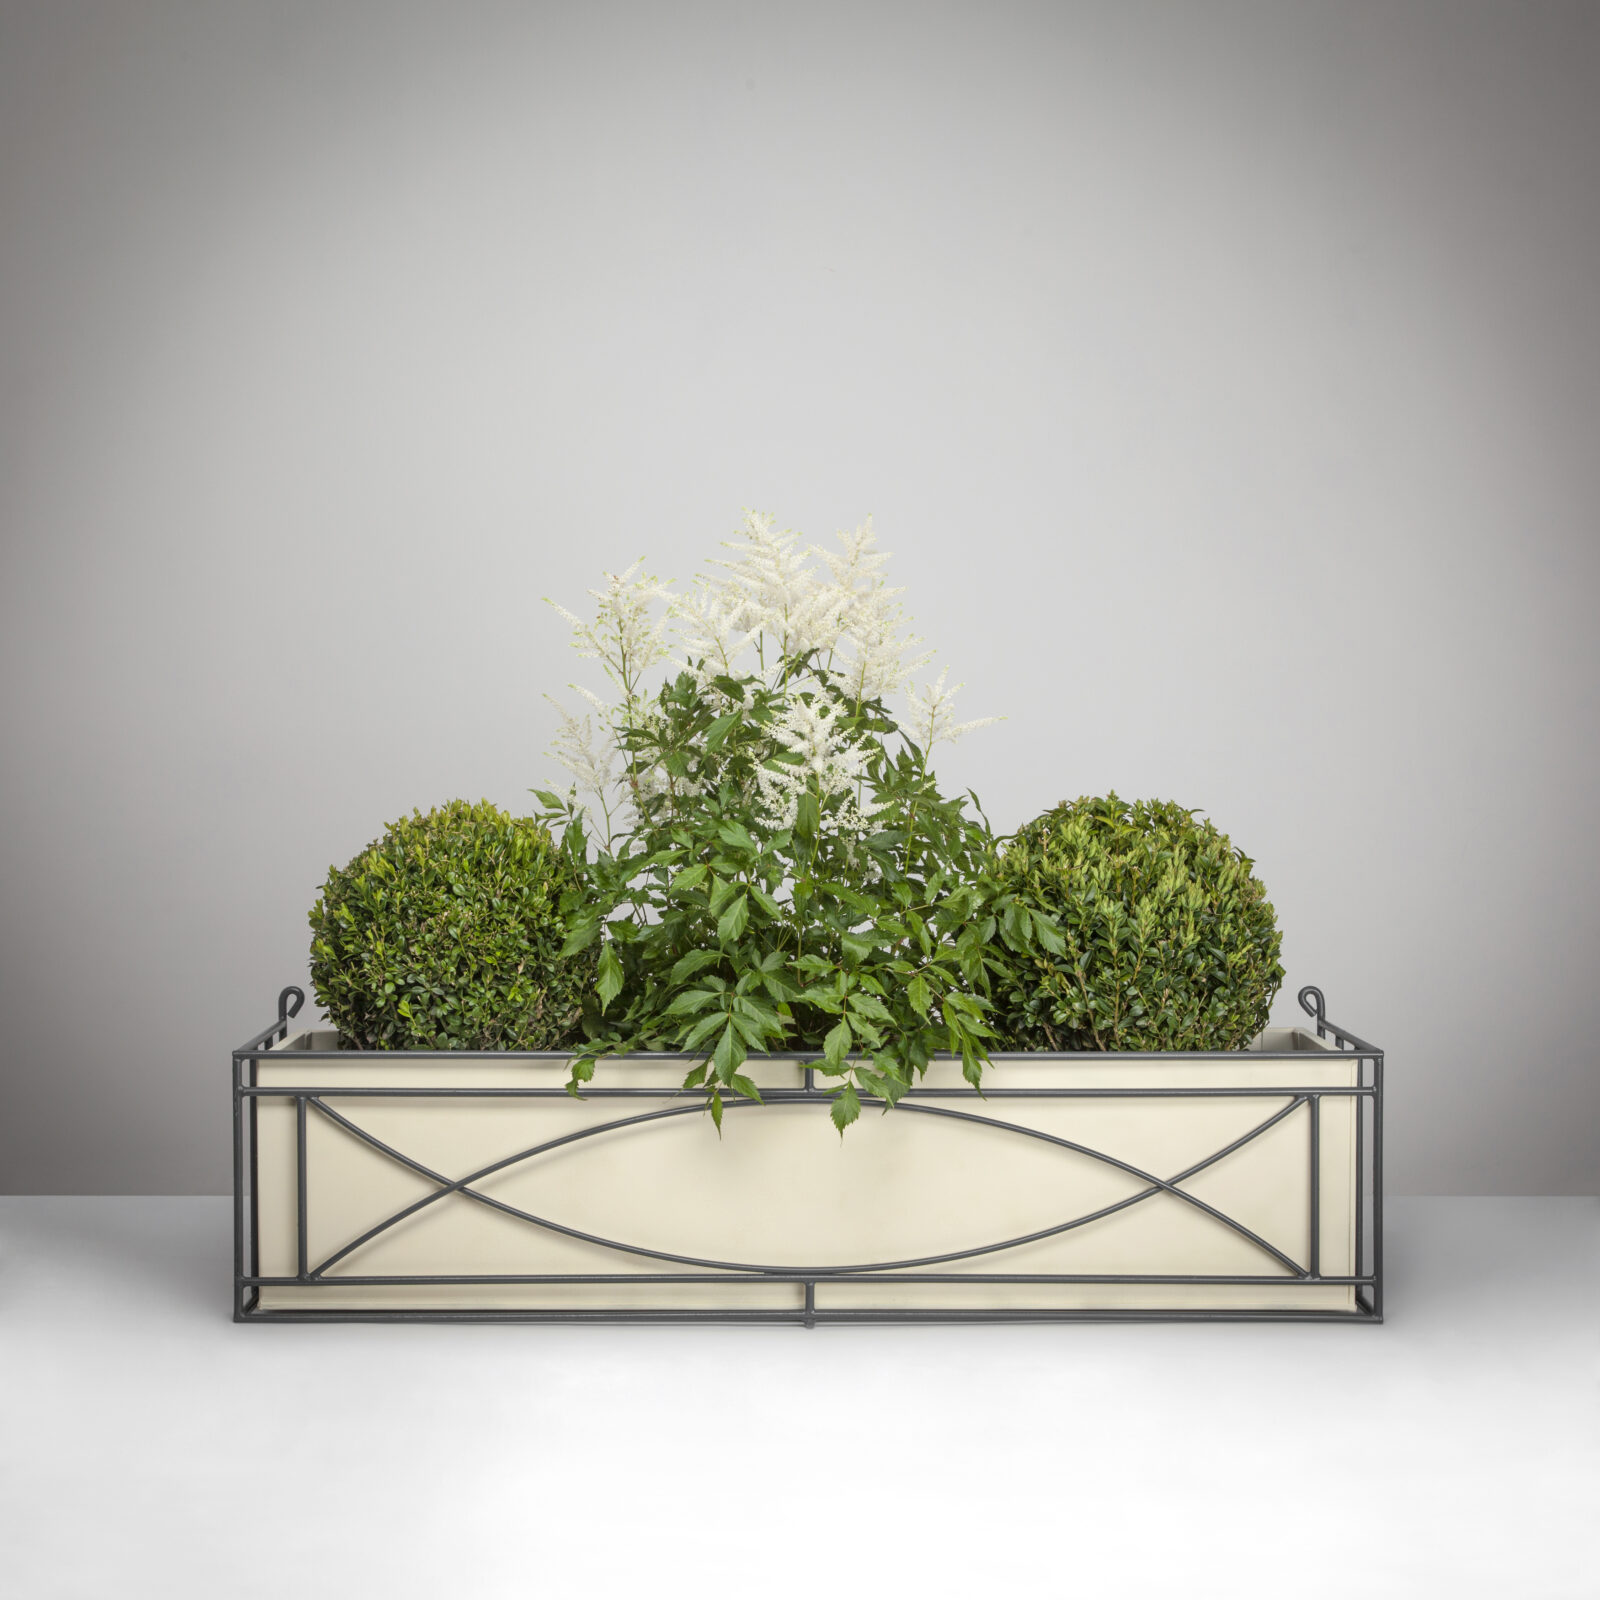 5 Crescent Window Box with Planter